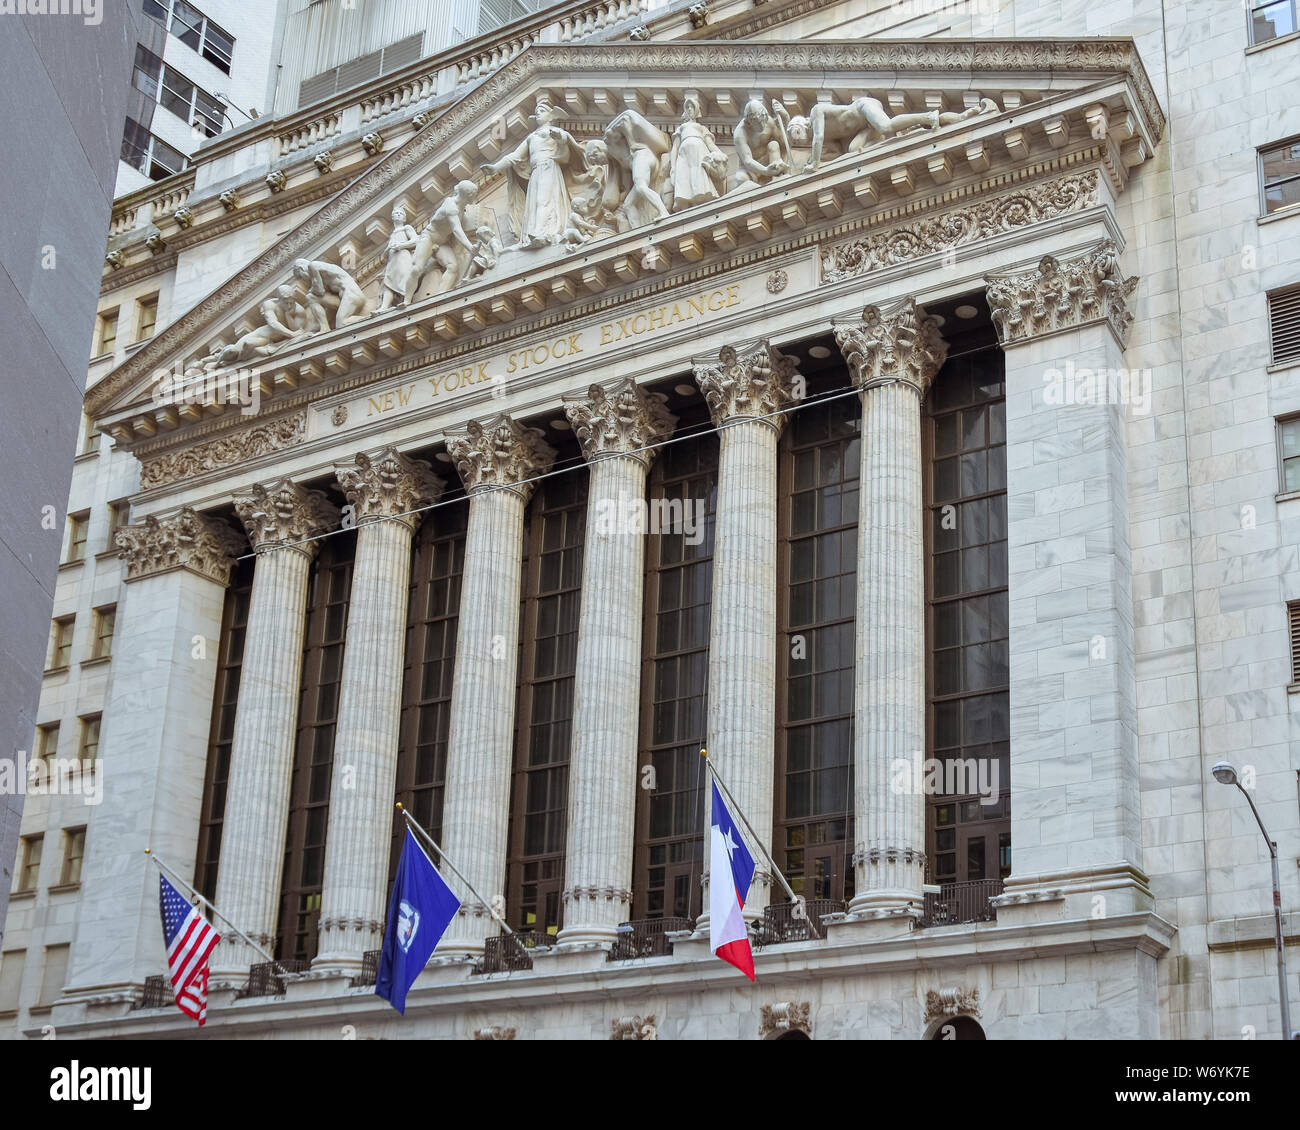 Famous Wall street and the building New York Stock Exchange. Main facade. Stock Photo